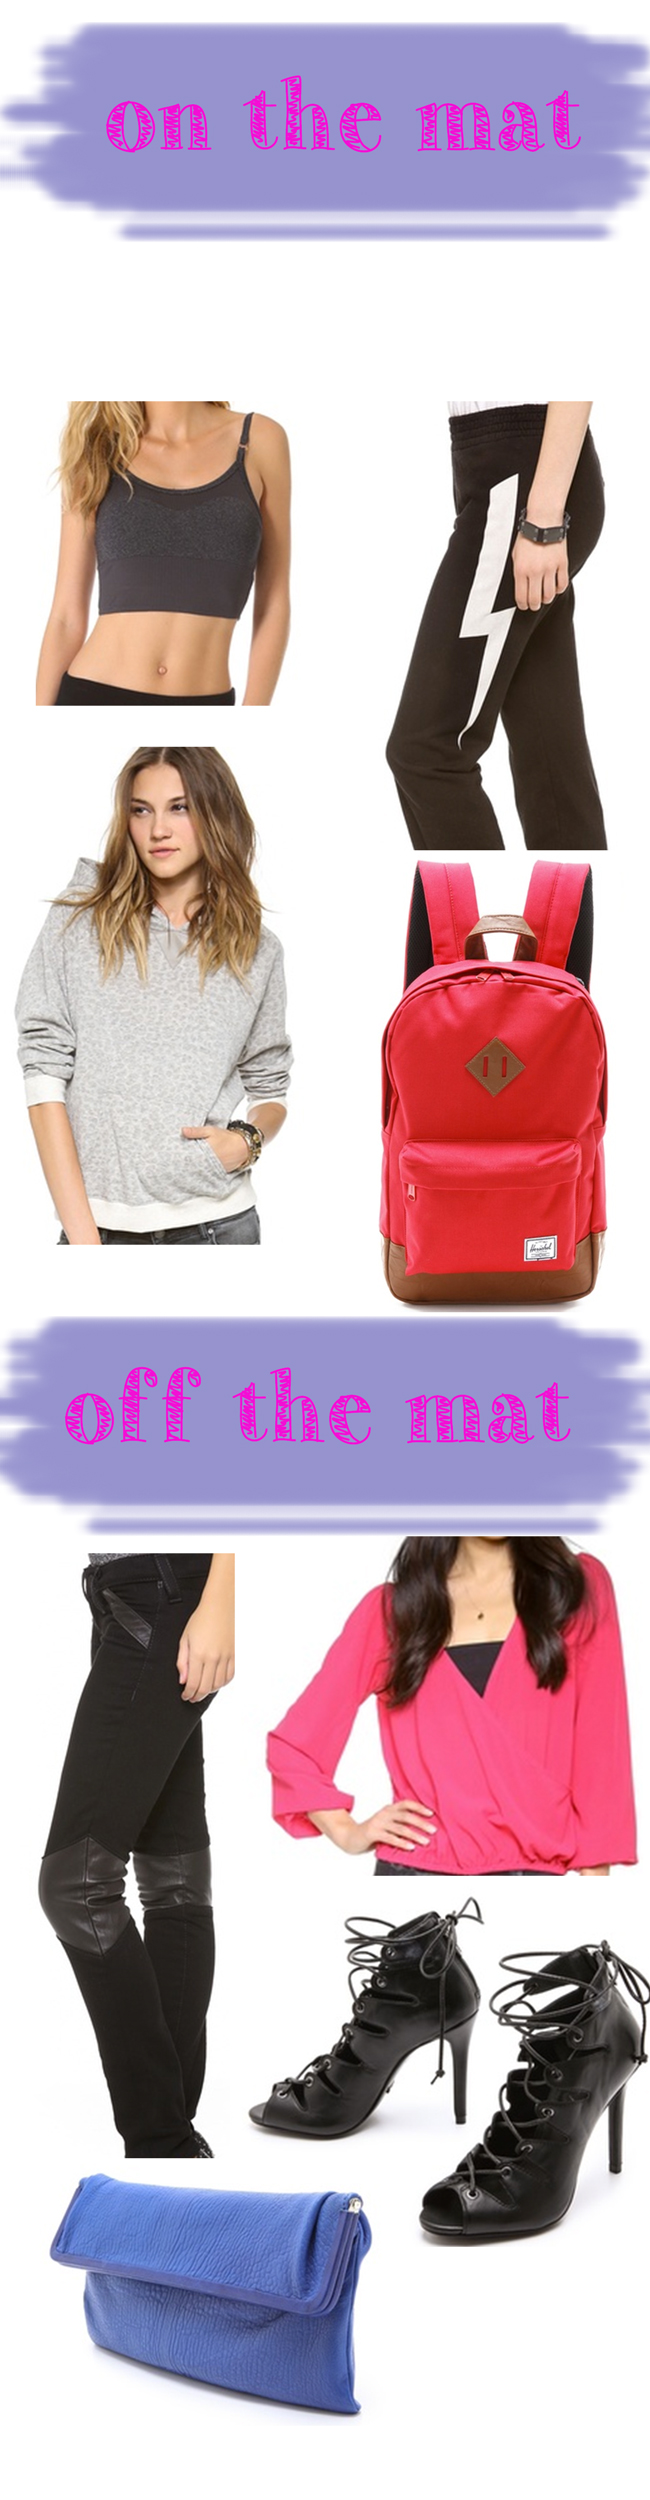 Pin it! On the mat, off the mat - sale edition!